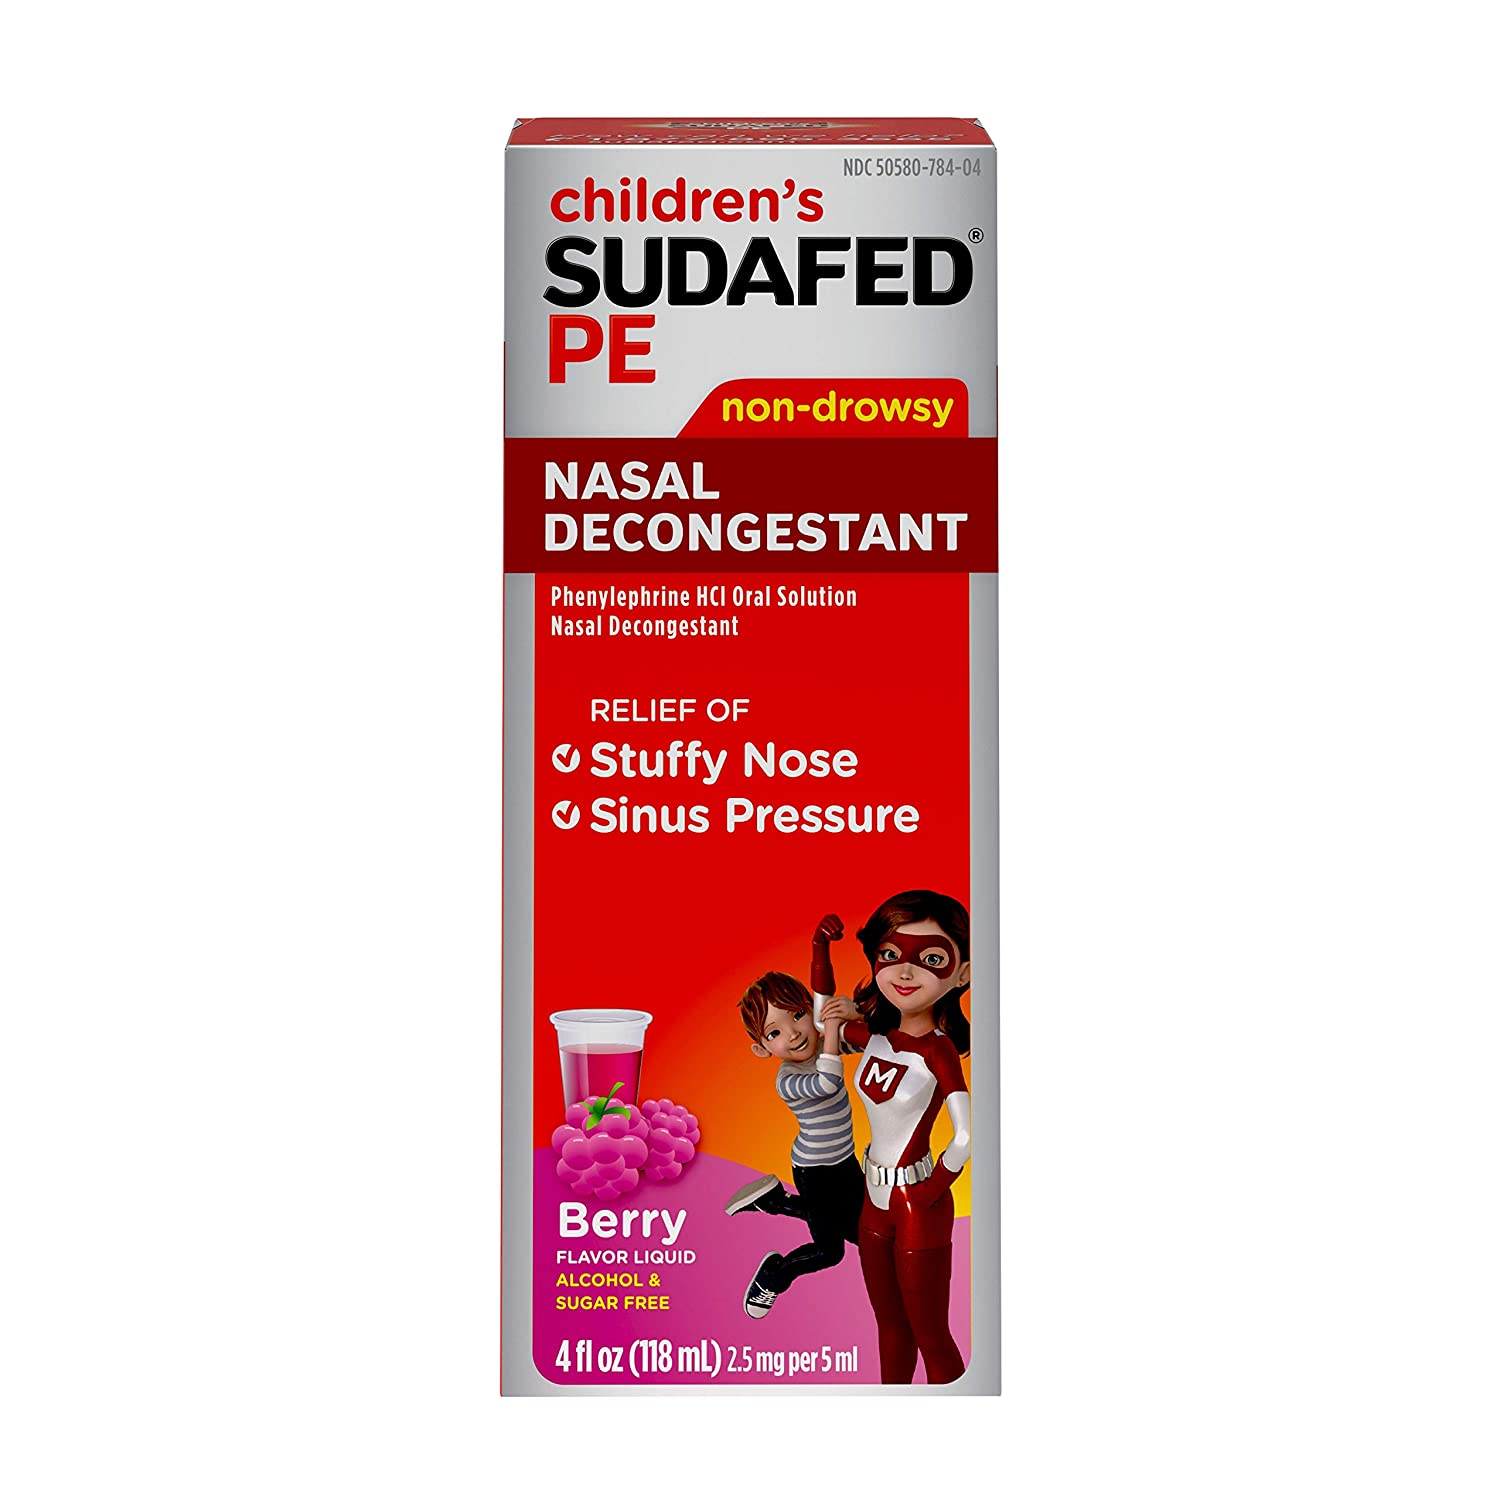 Children's Sudafed PE Nasal Decongestant with Phenylephrine HCl, Berry-Flavored Liquid, 4 fl. oz